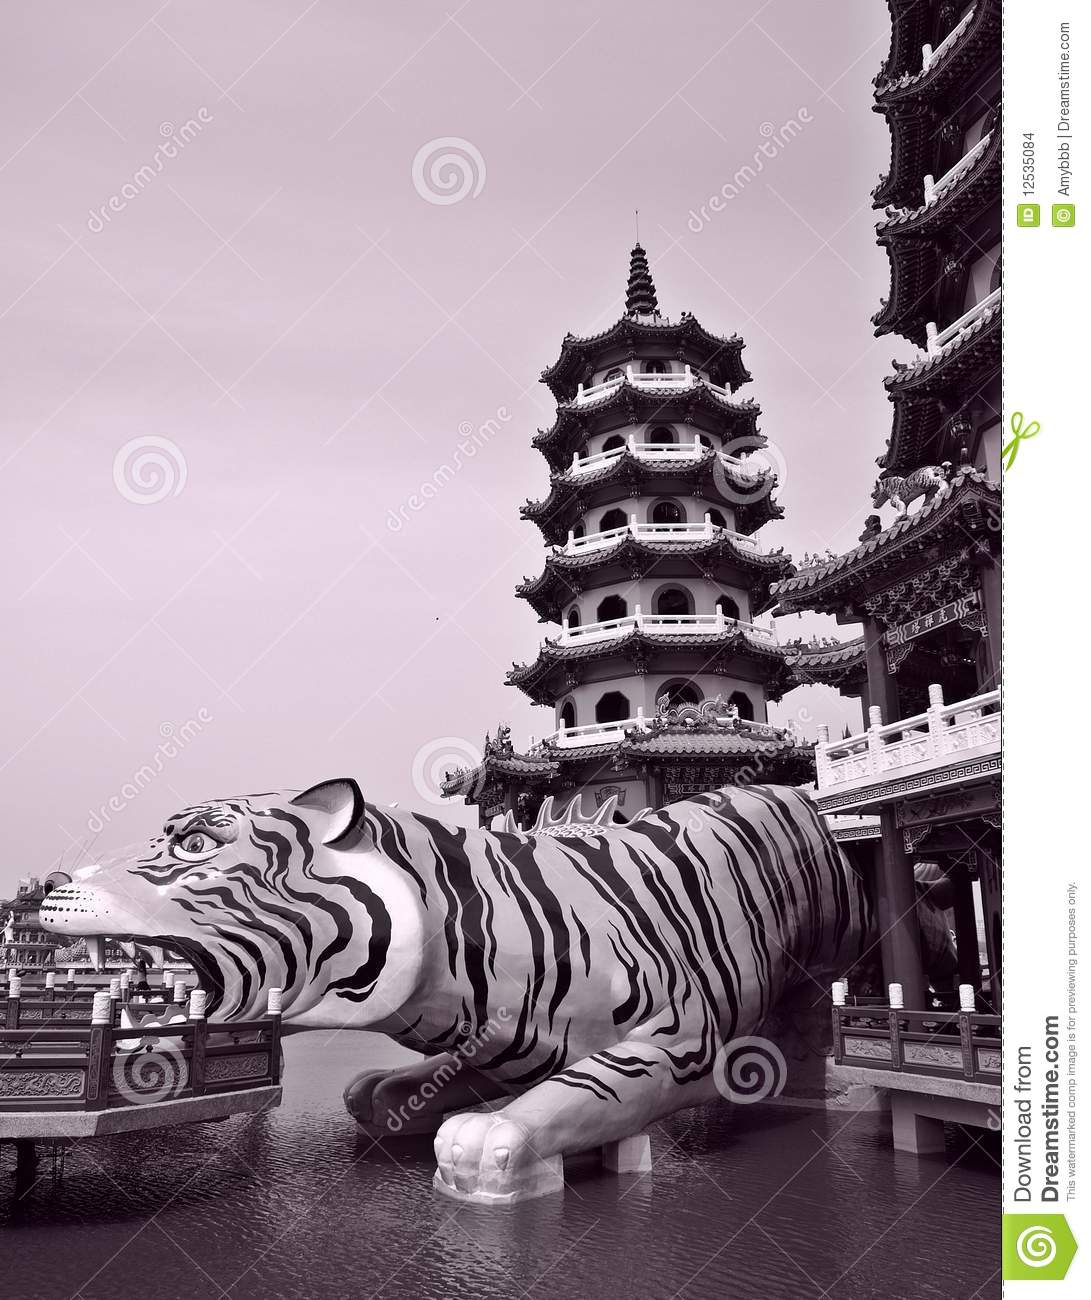 Chinese Temple: The dragon and tiger pagodas